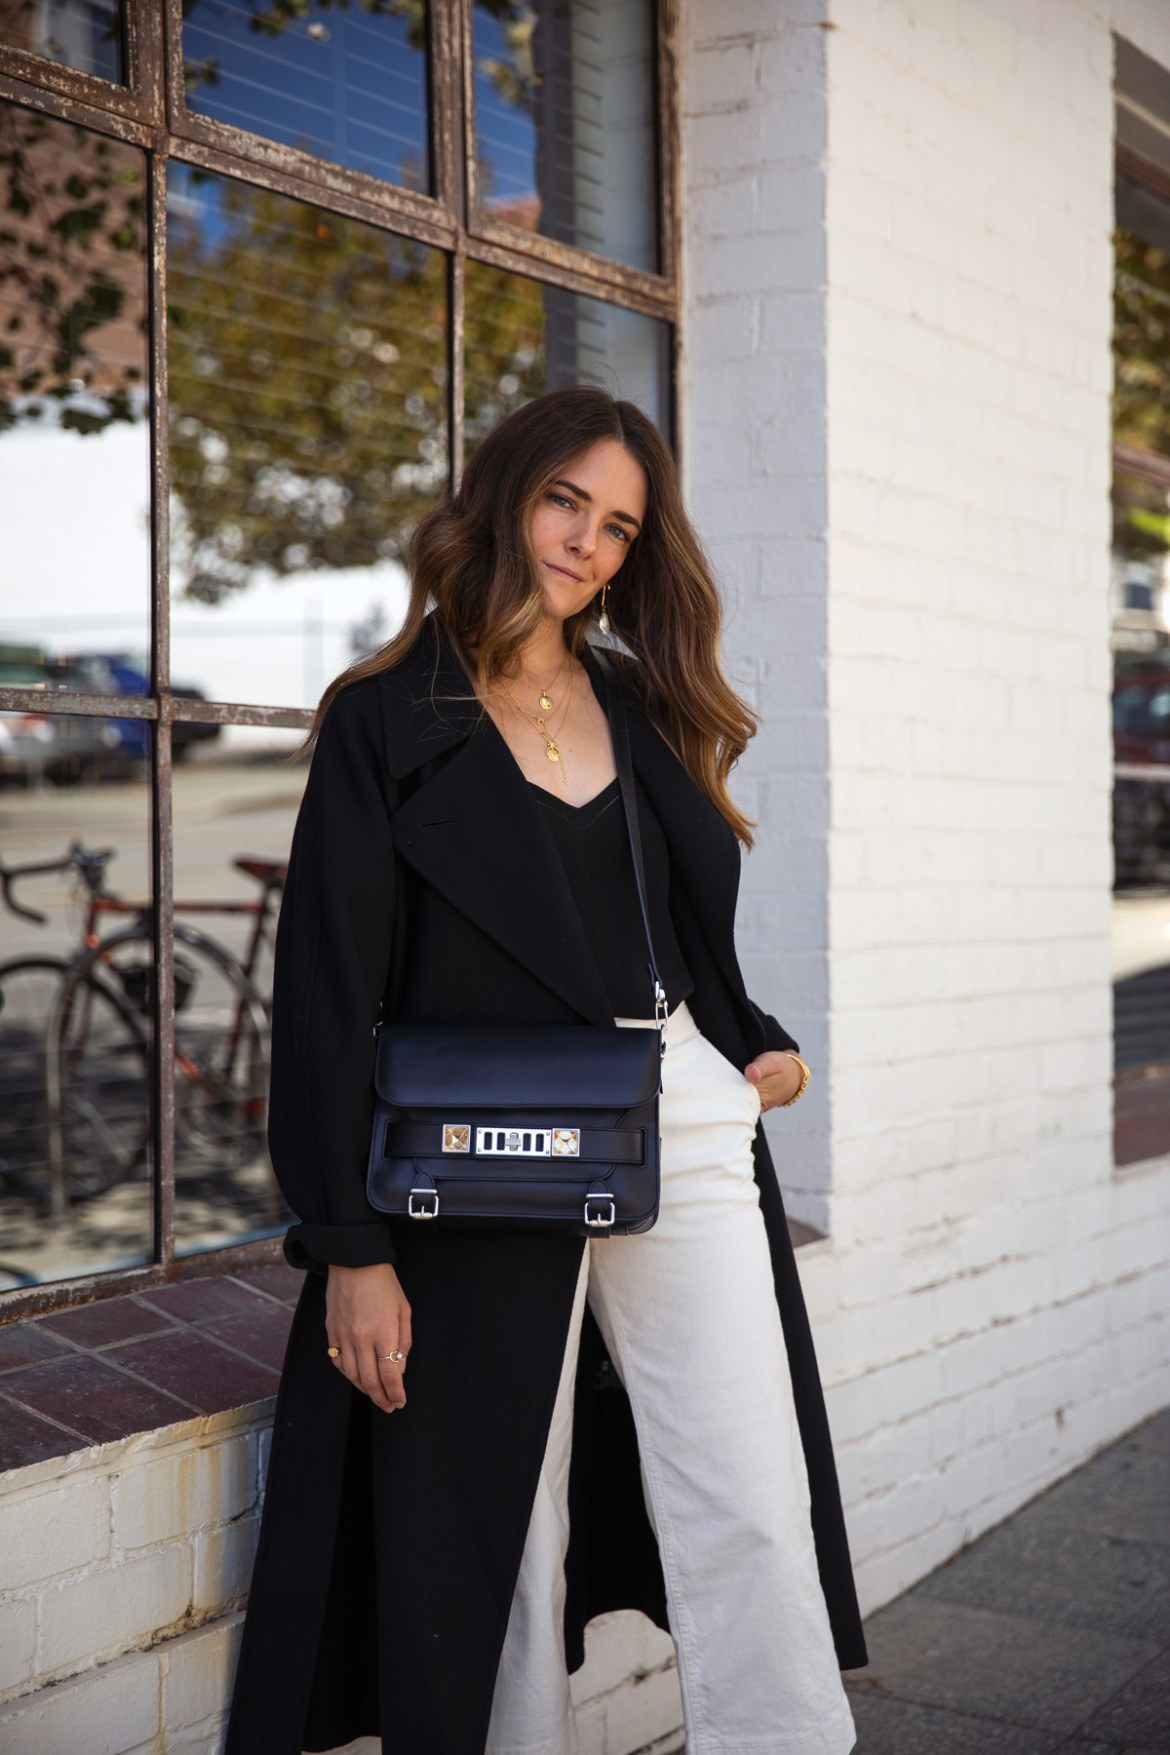 Uniqlo U black coat, Boden silk camisole, cropped jeans, Proenza Schouler PS11 bag outfit worn by Inspiring Wit fashion blogger Jenelle